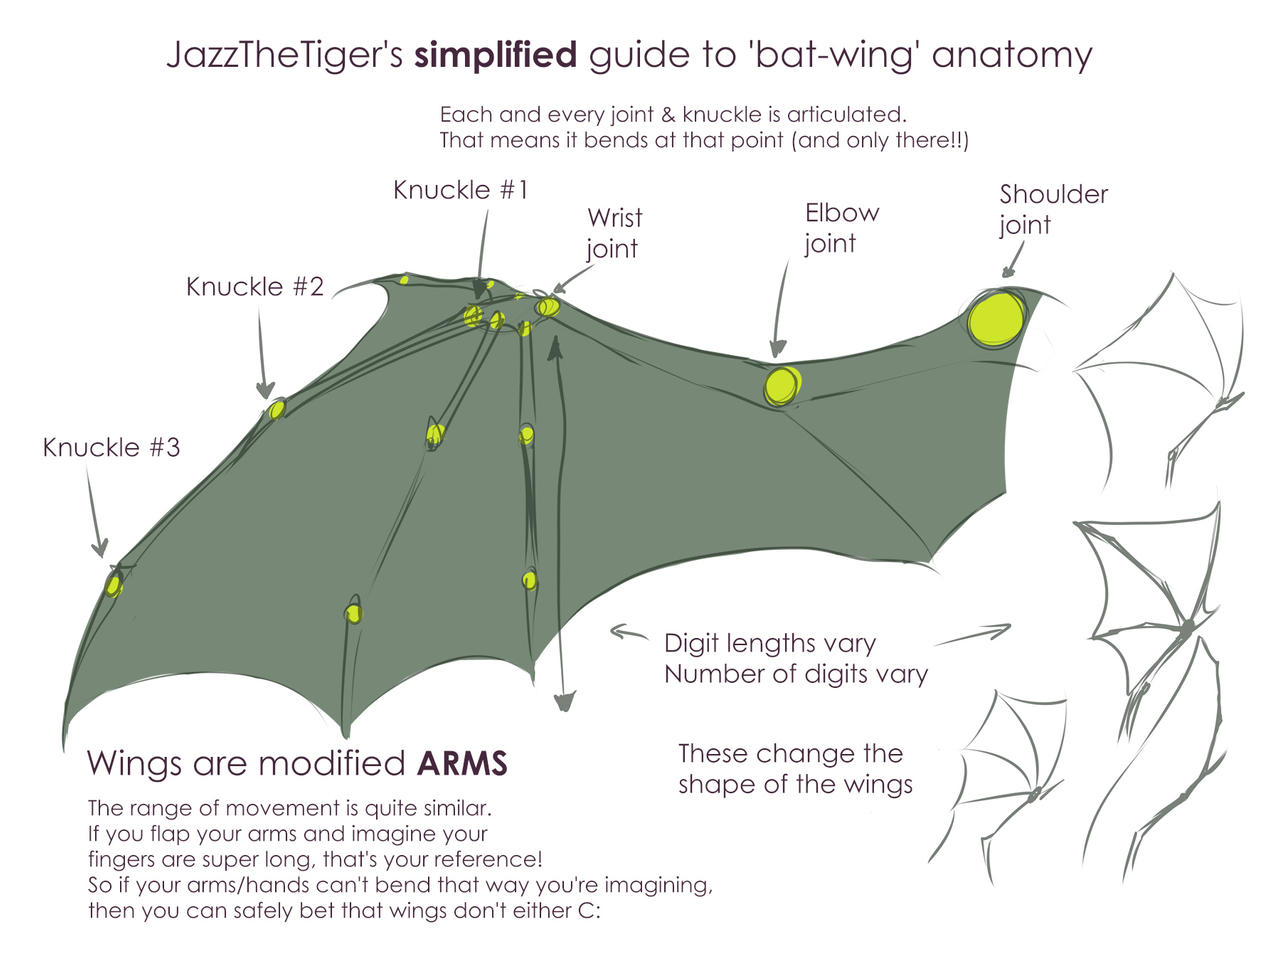 Jazz's simplified guide to  'bat-wing' anatomy